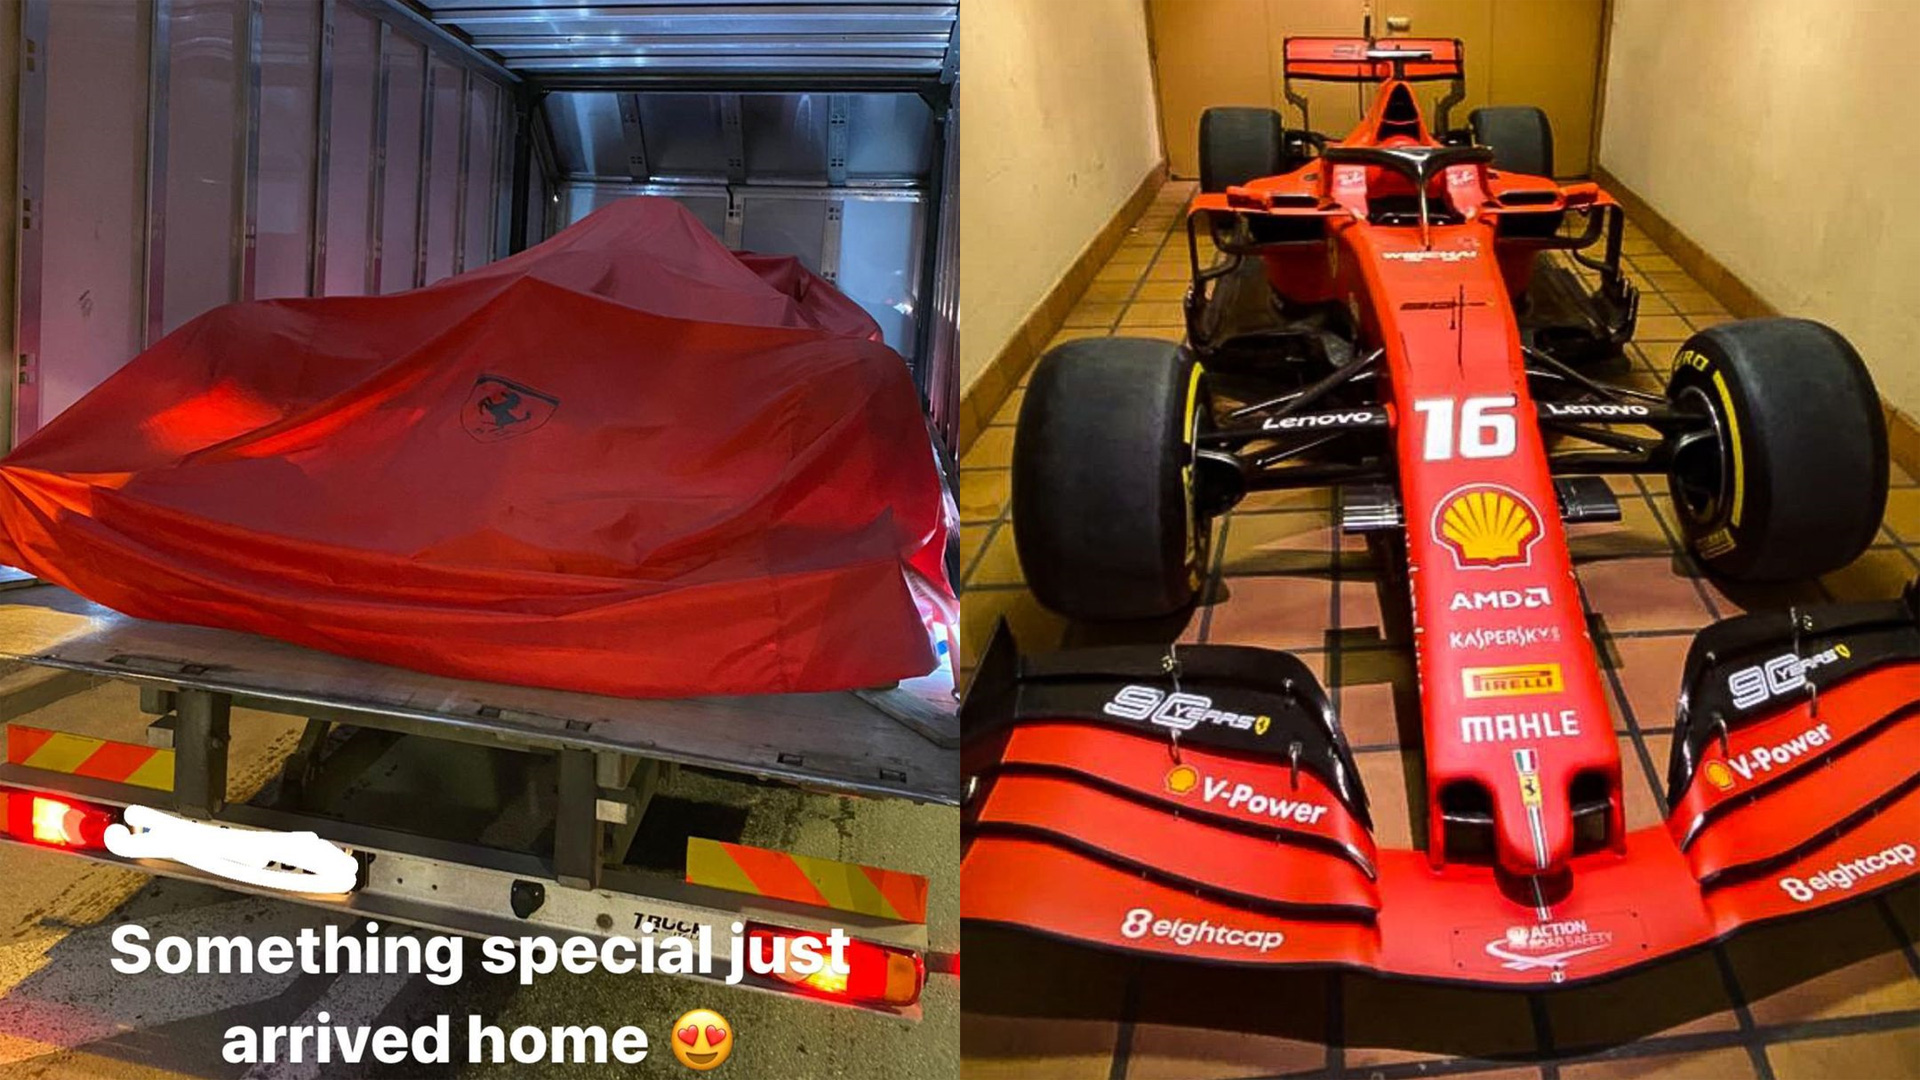 Leclerc shared images of his Ferrari SF90 on social media